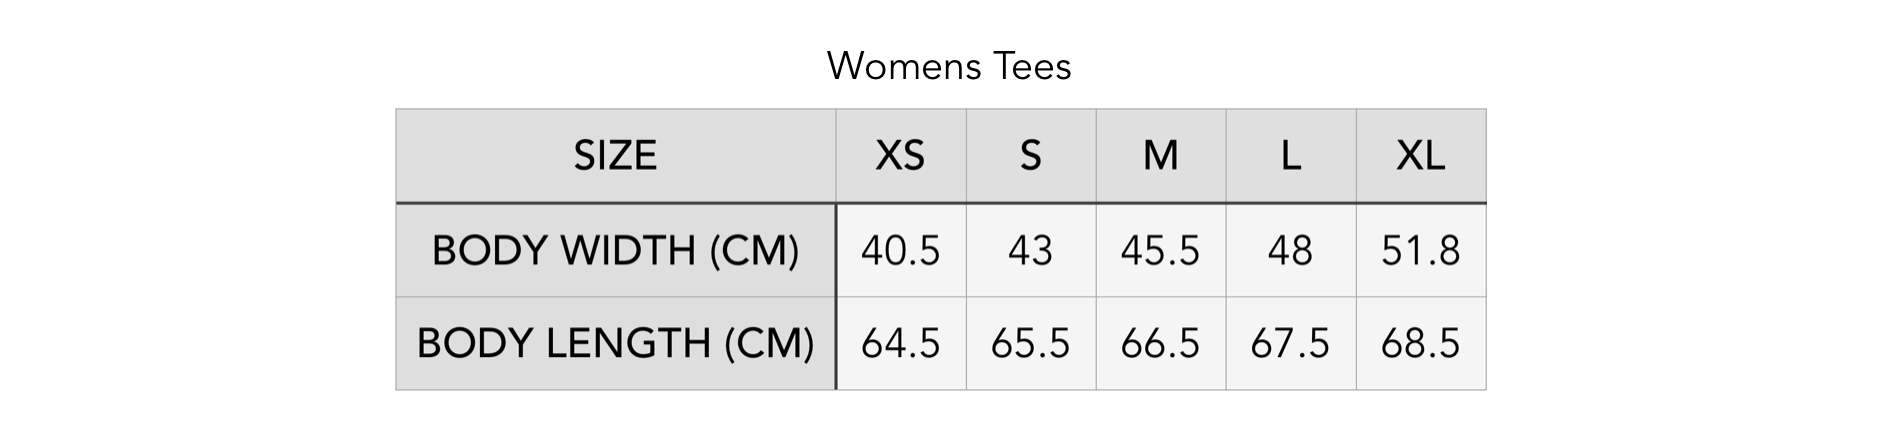 Sketch Tees (Womens Tees) SS size guide.jpg